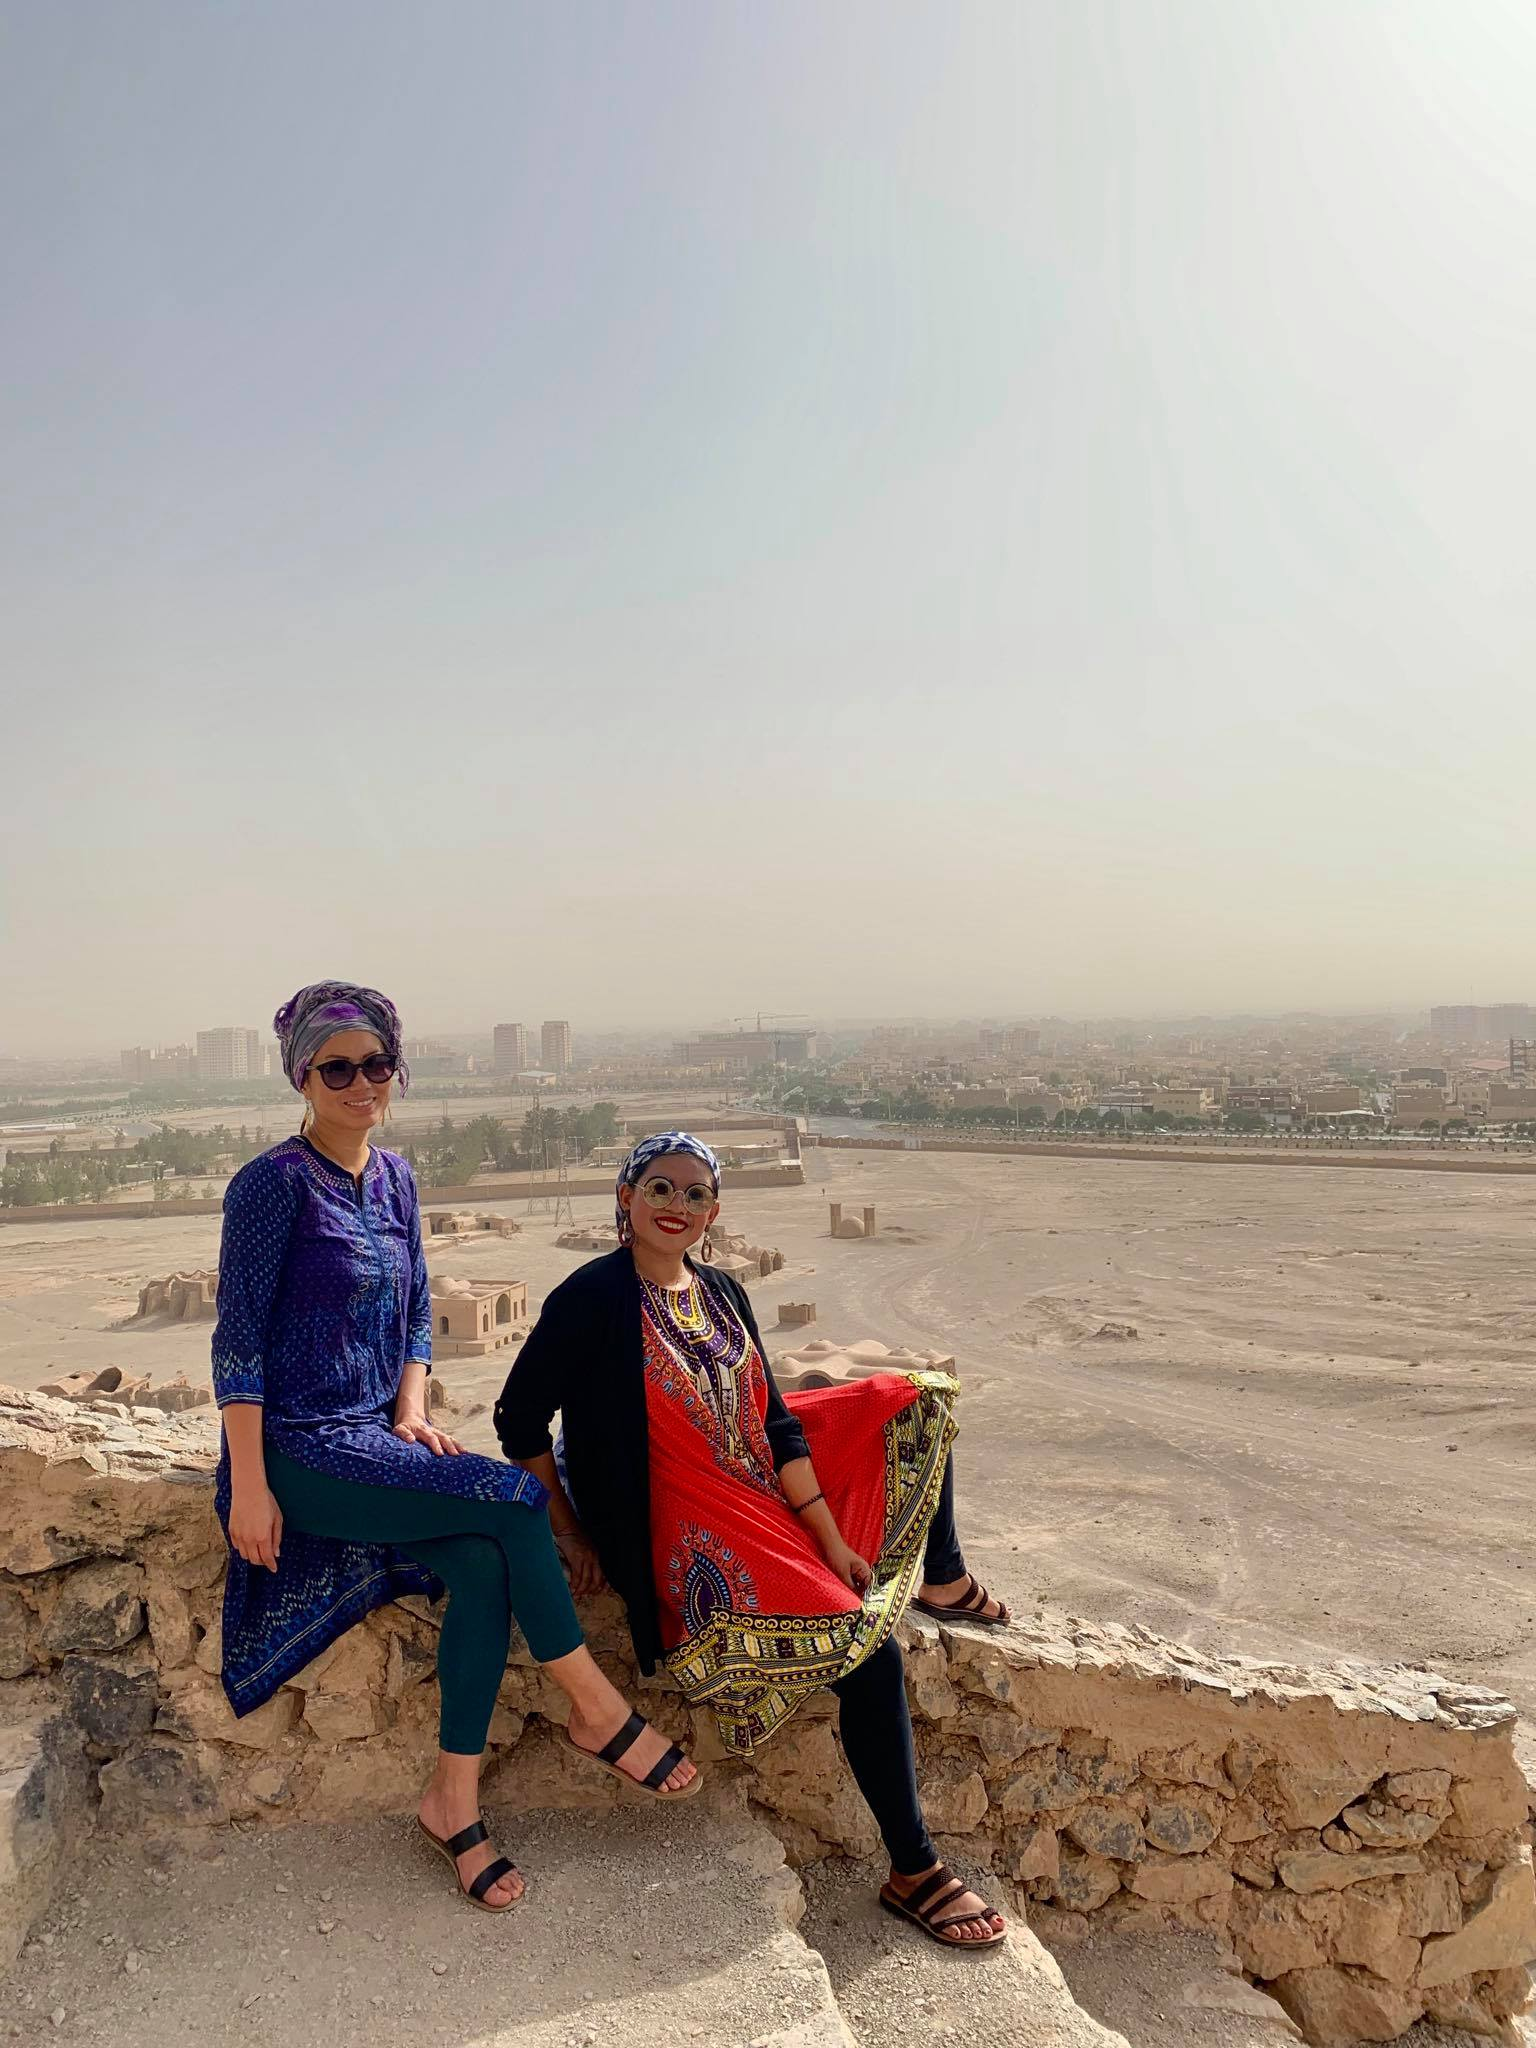 Kach Solo Travels in 2019 YAZD - the desert city in Iran6.jpg